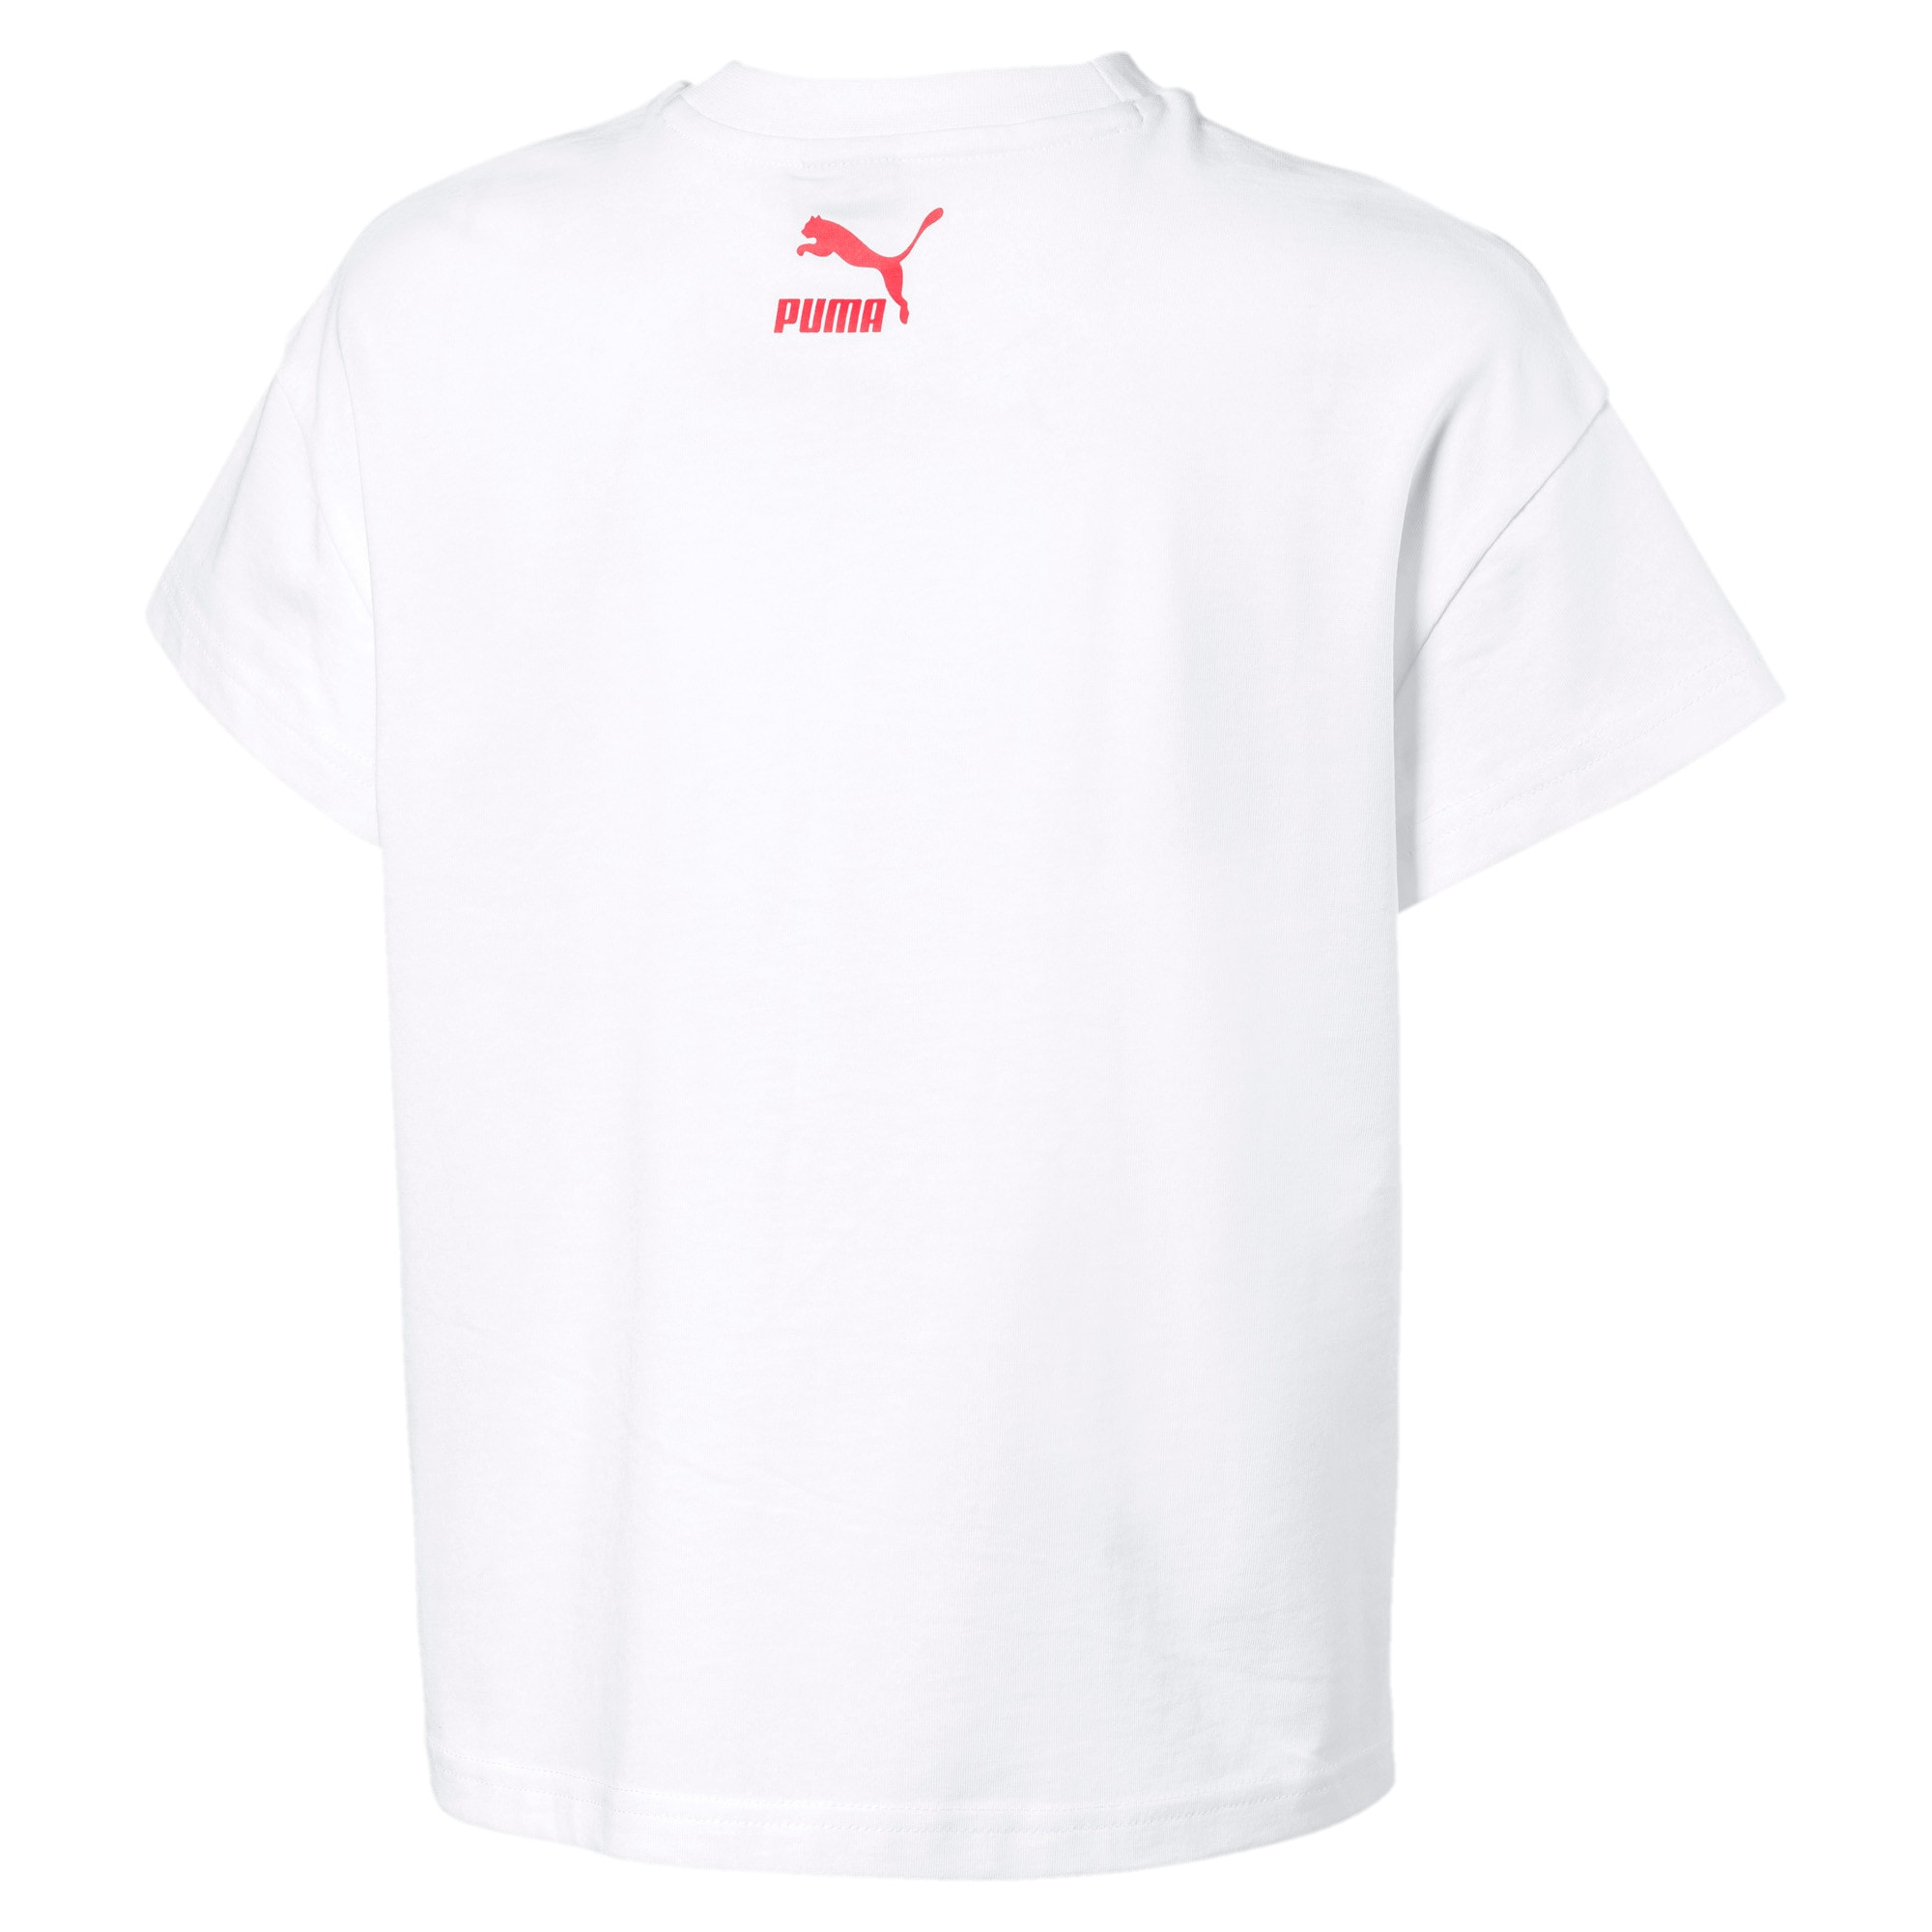 Thumbnail 2 of PUMA XTG Girls' Tee JR, Puma White, medium